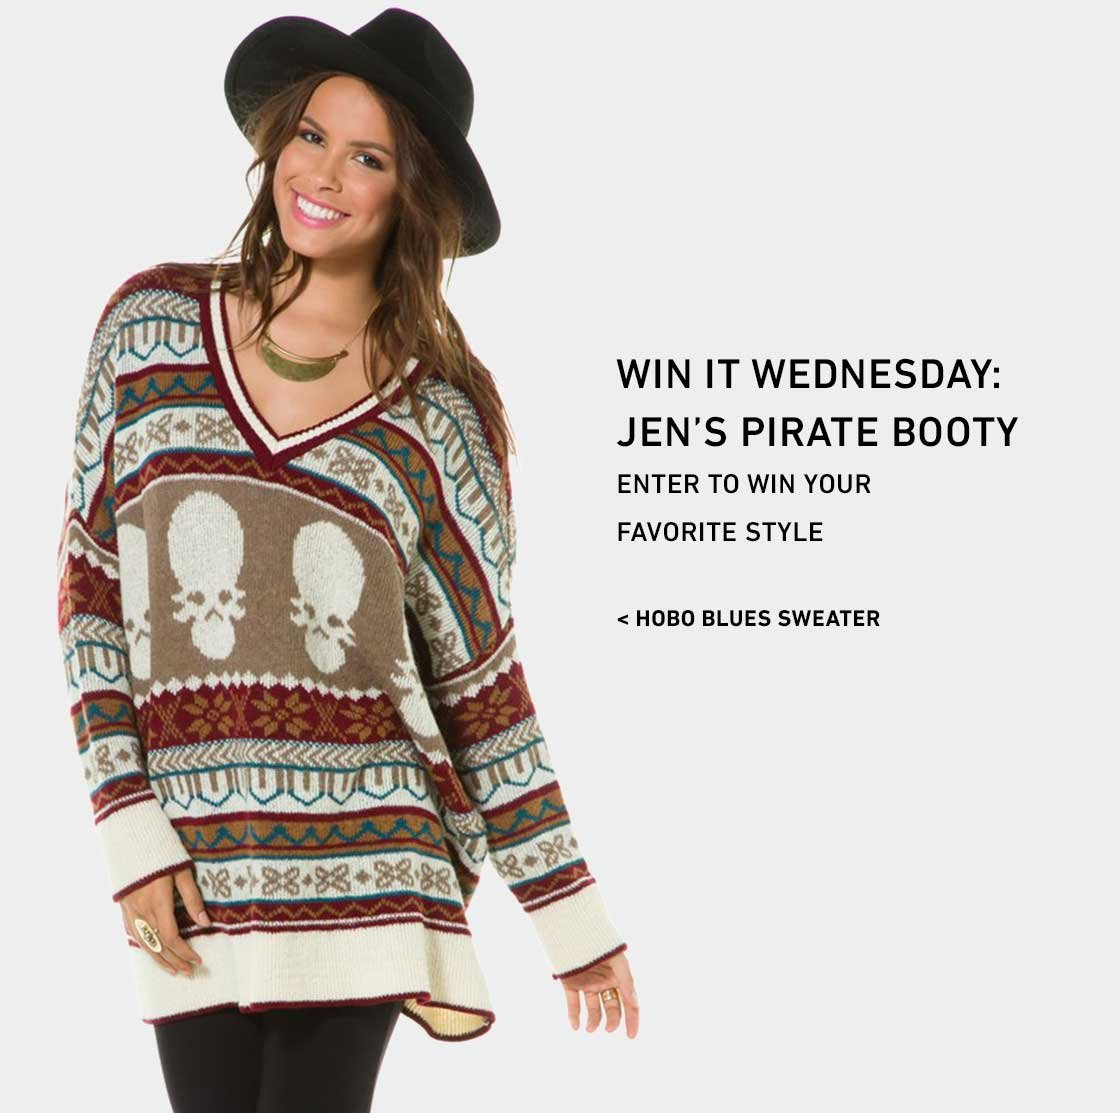 Enter to Win Your Favorite Piece from Jen's Pirate Booty